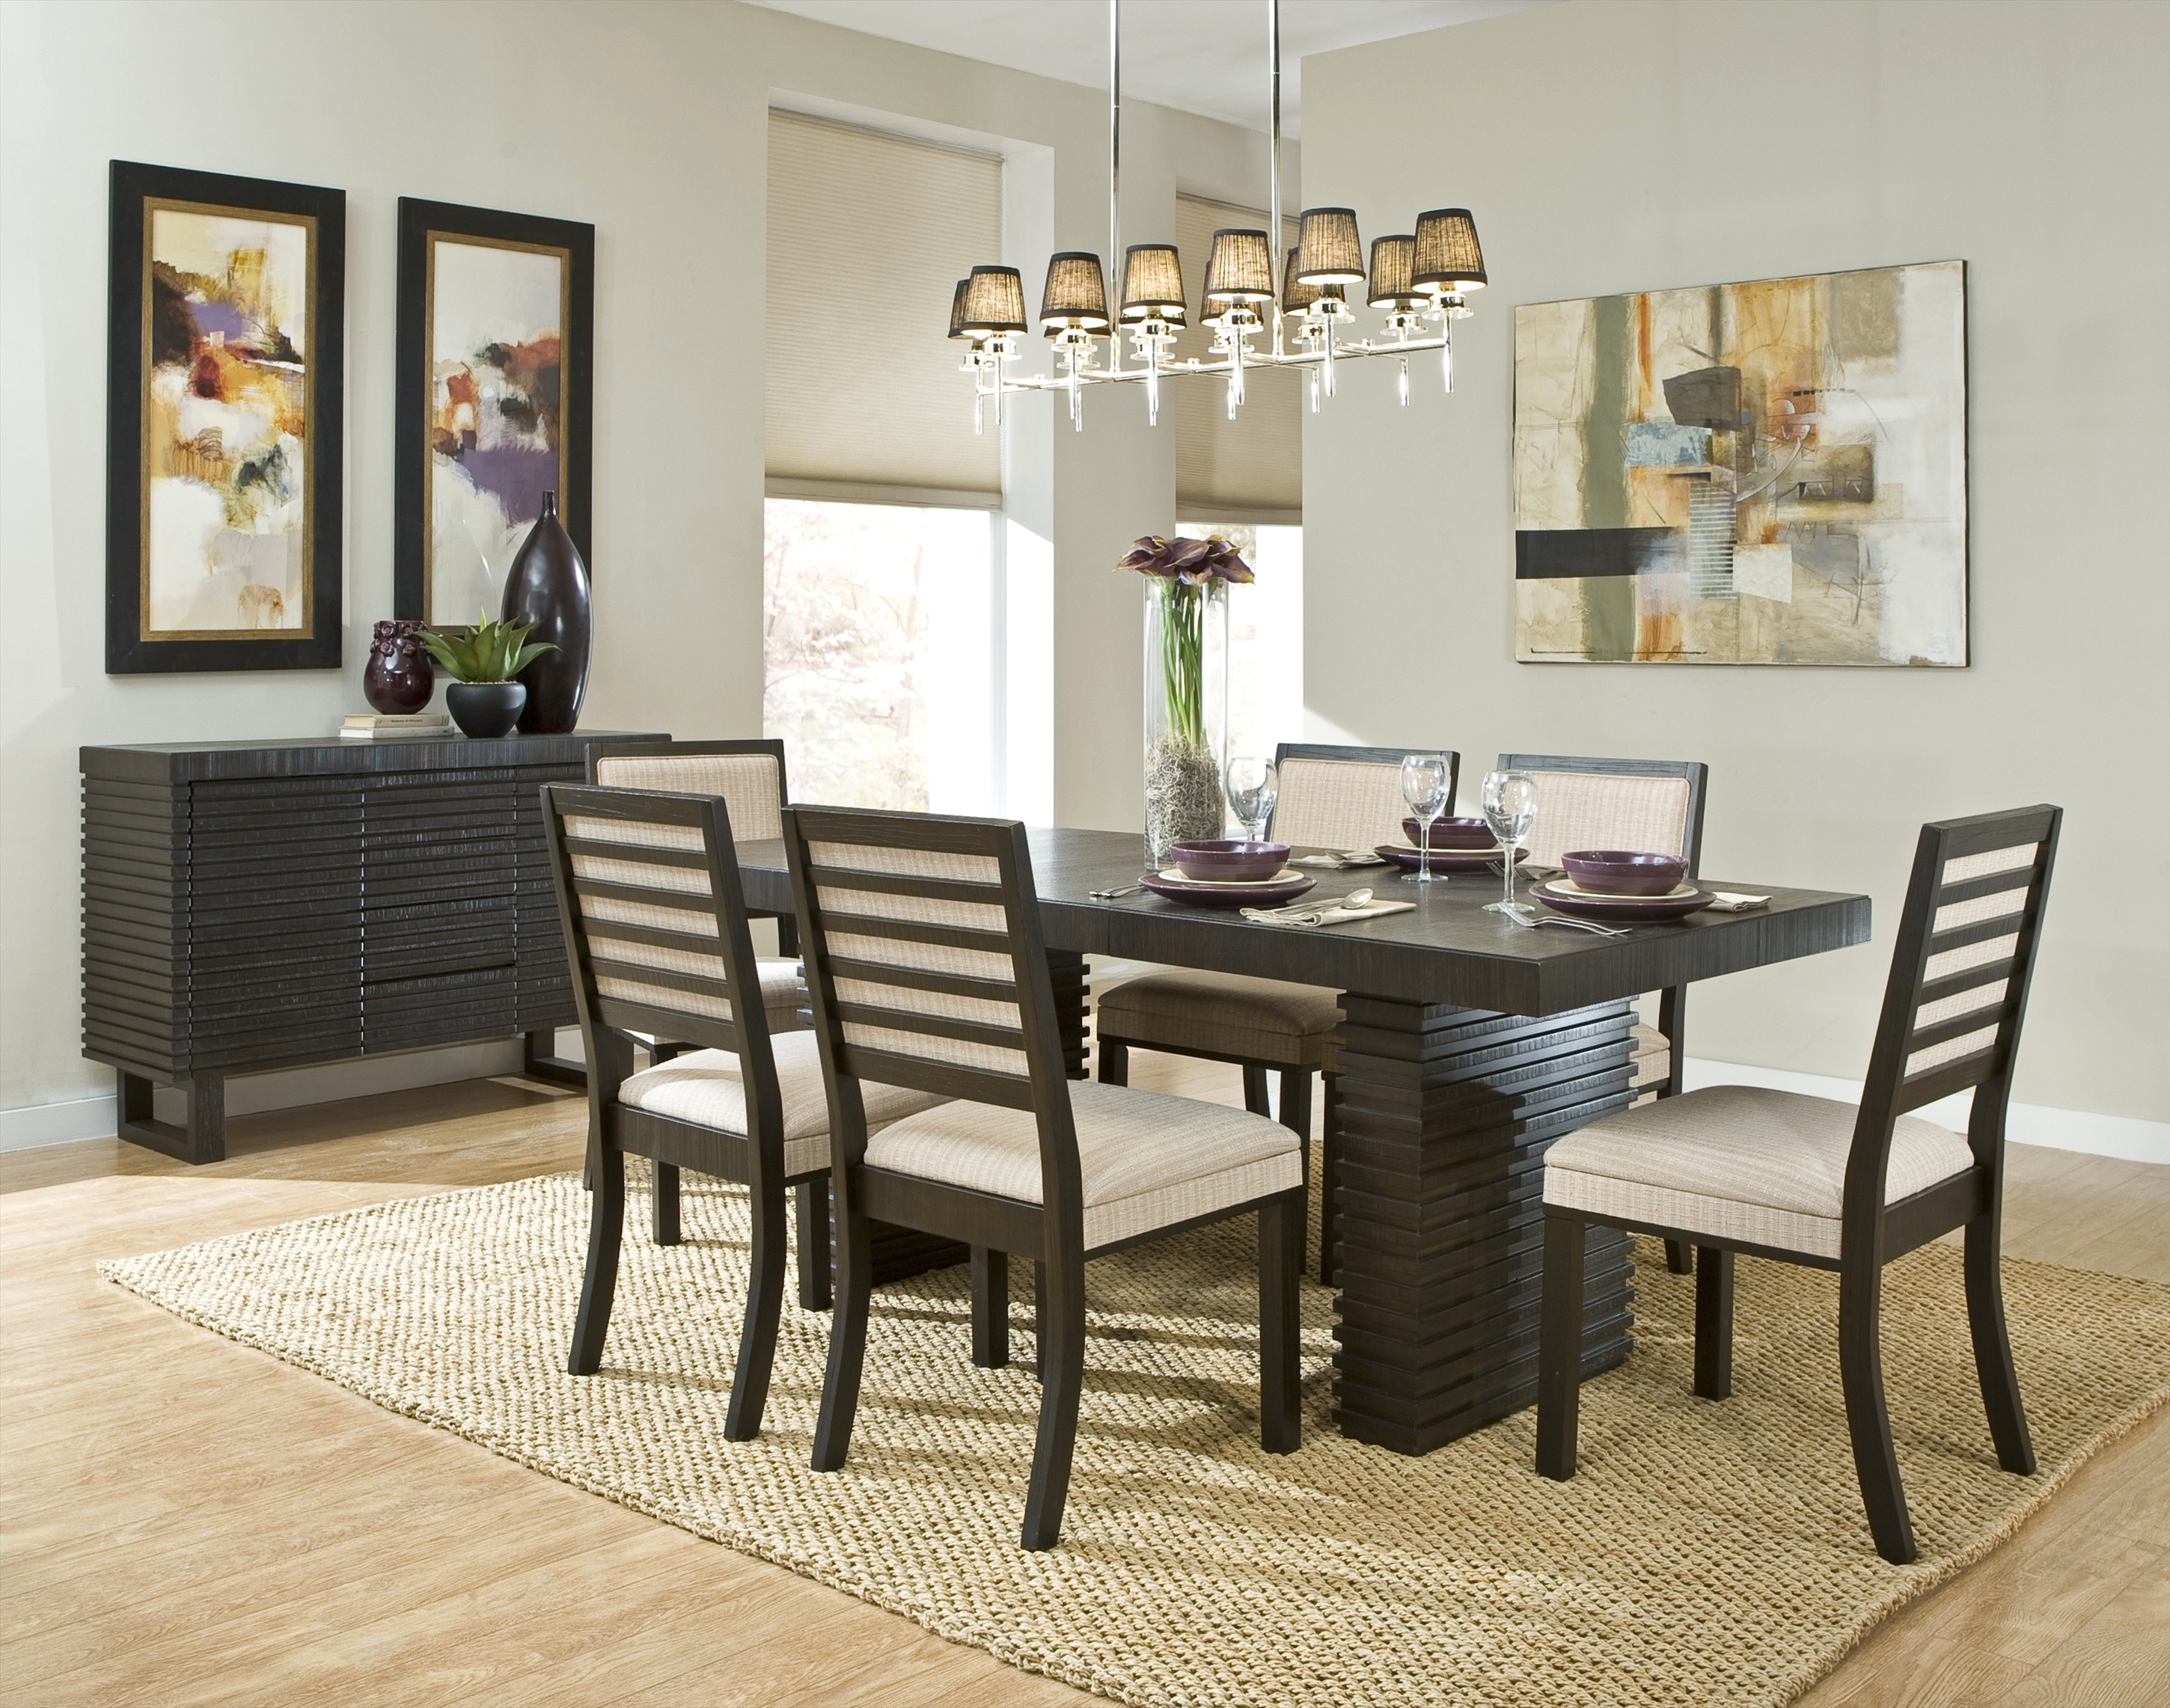 modern chandeliers dining room photo - 1